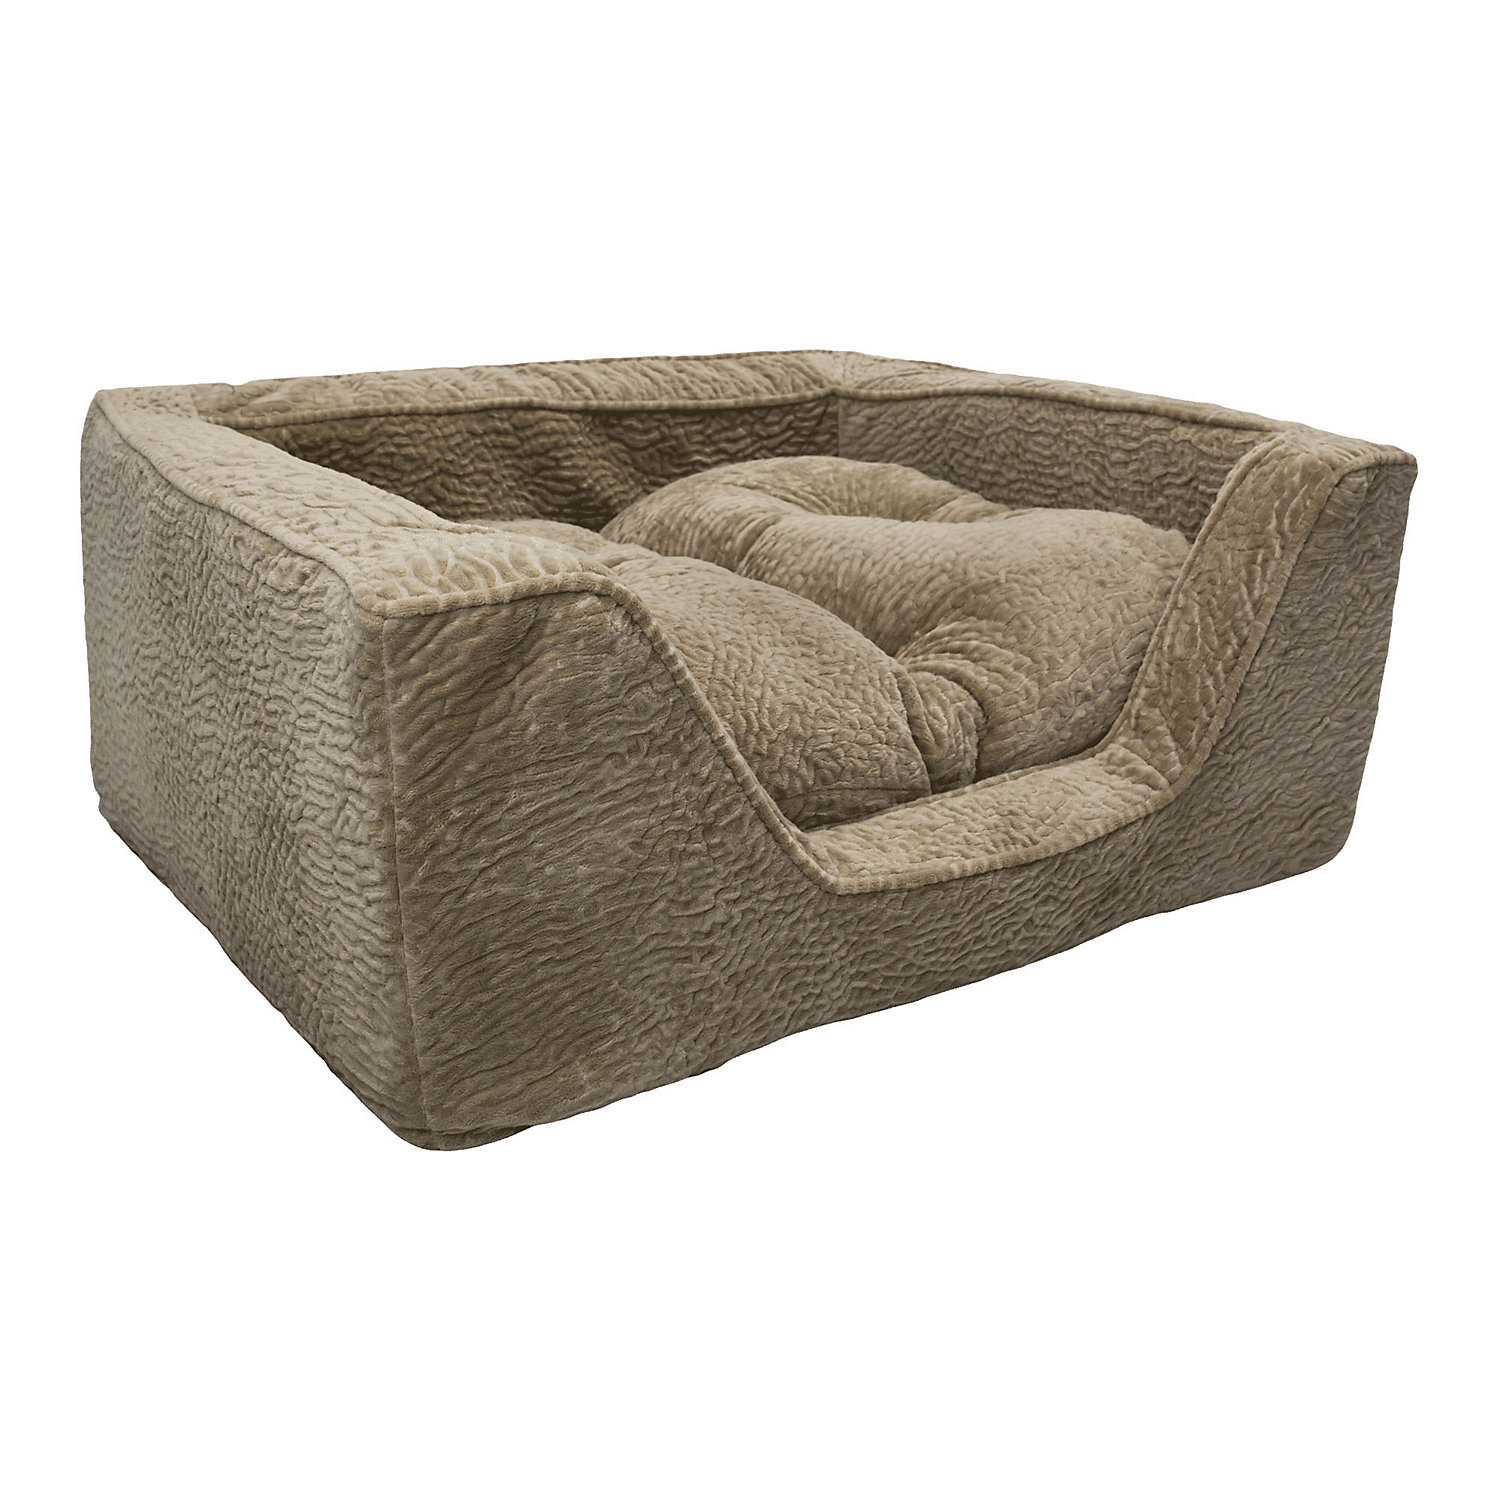 Snoozer Premium Micro Suede Square Piston Sand Dog Bed 23 L X 19 W Medium